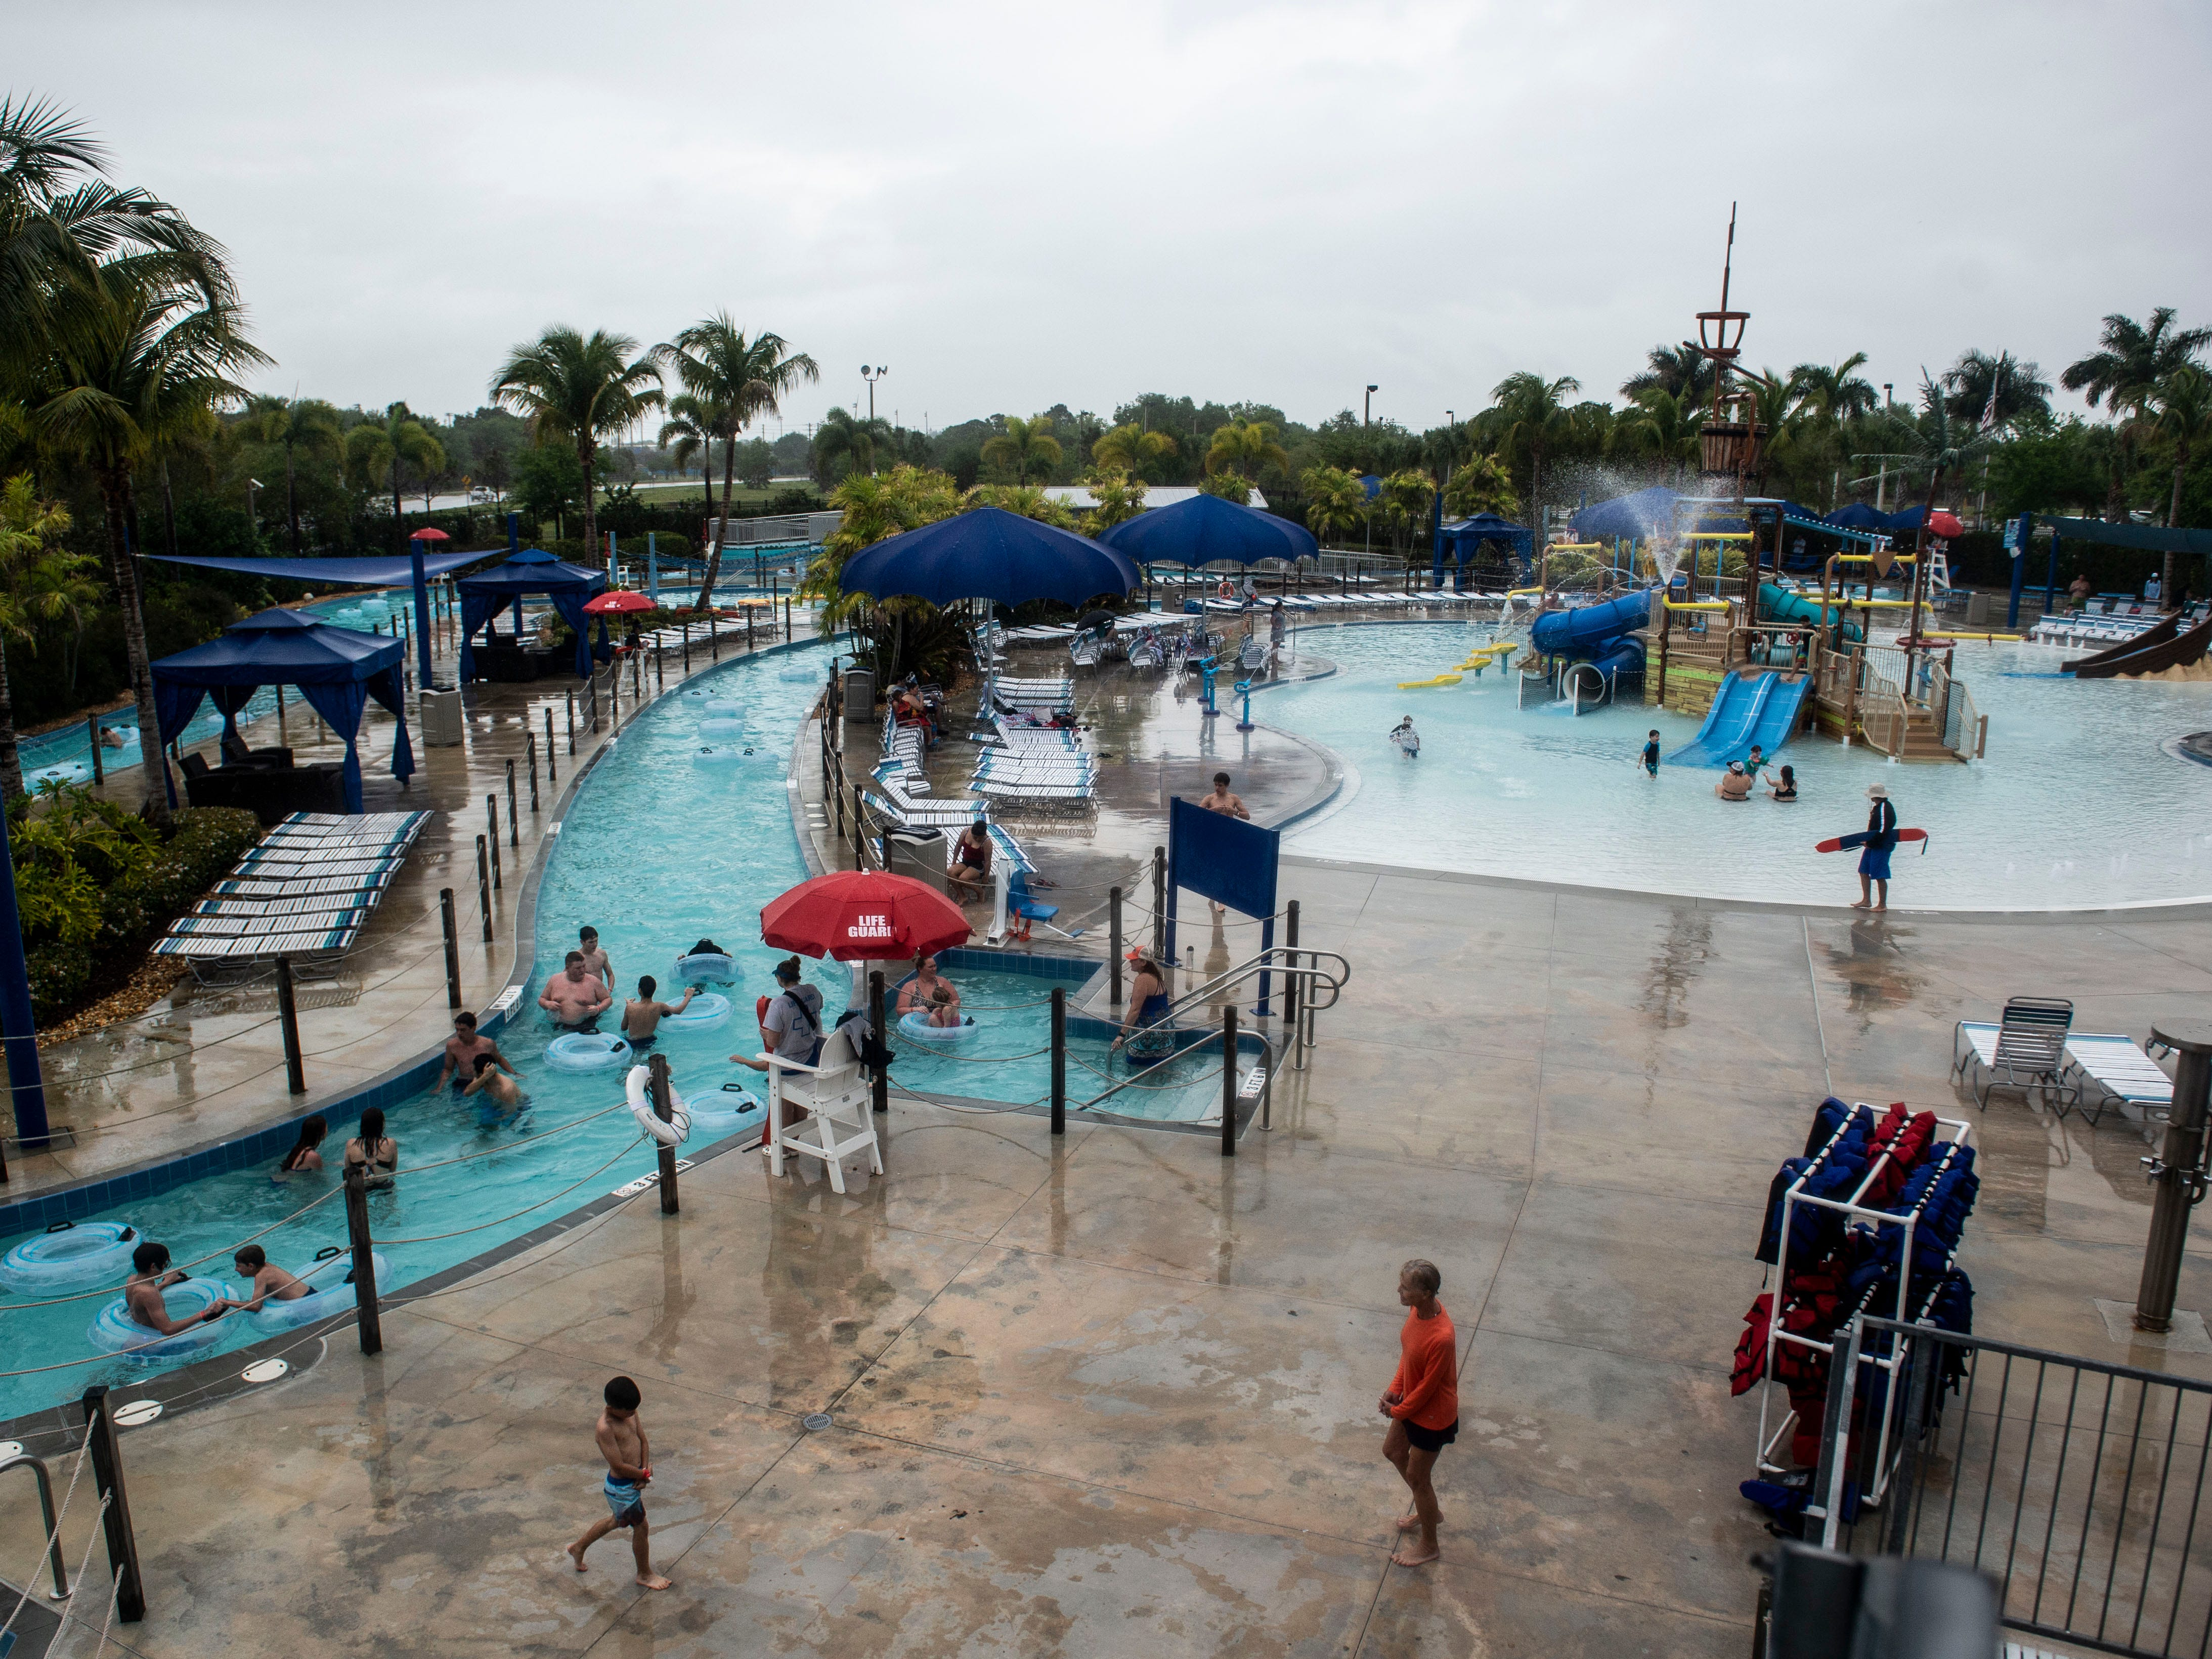 Despite a rainy morning, spring breakers enjoyed slides, the interactive splash playground and the lazy river Friday, March 15, 2019, at Sailfish Splash Waterpark in Stuart. The waterpark was open all week for spring break and is now open 10:30 a.m. to 5 p.m. Saturdays and Sundays through May 31, when summer hours start and the park is open daily.